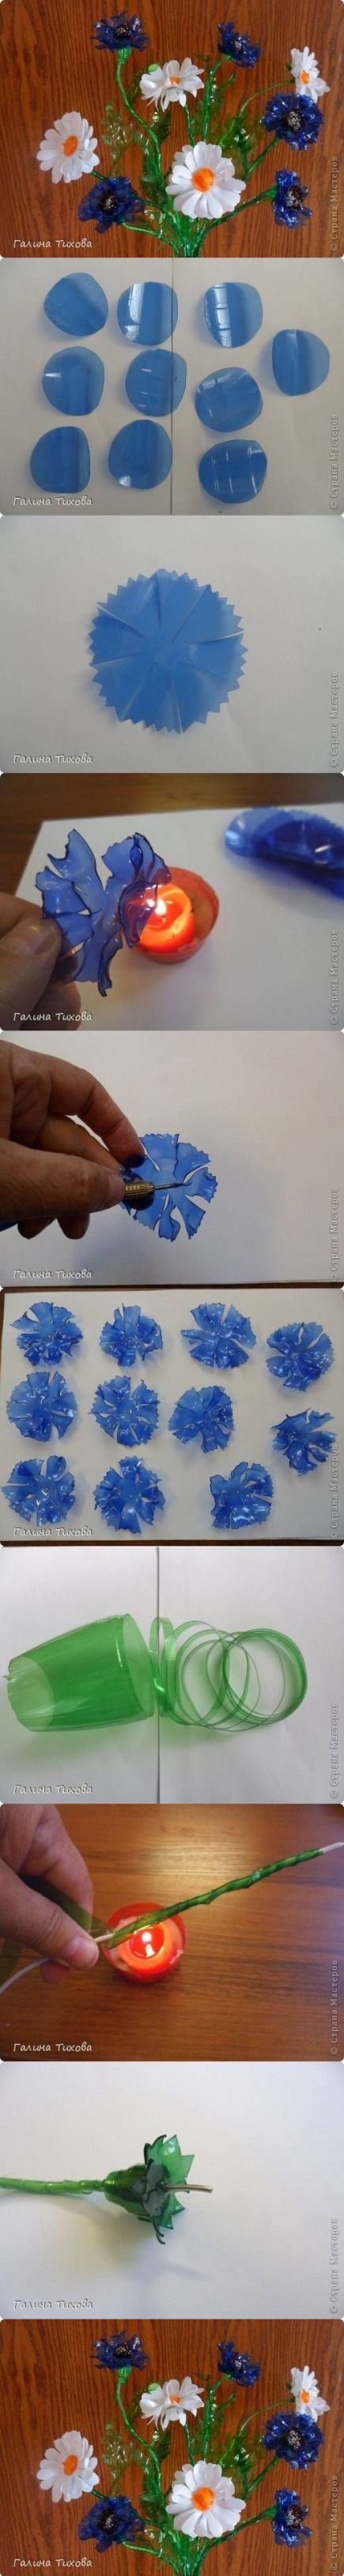 best Plastic crafts images on Pinterest Crafts Fairy gardens